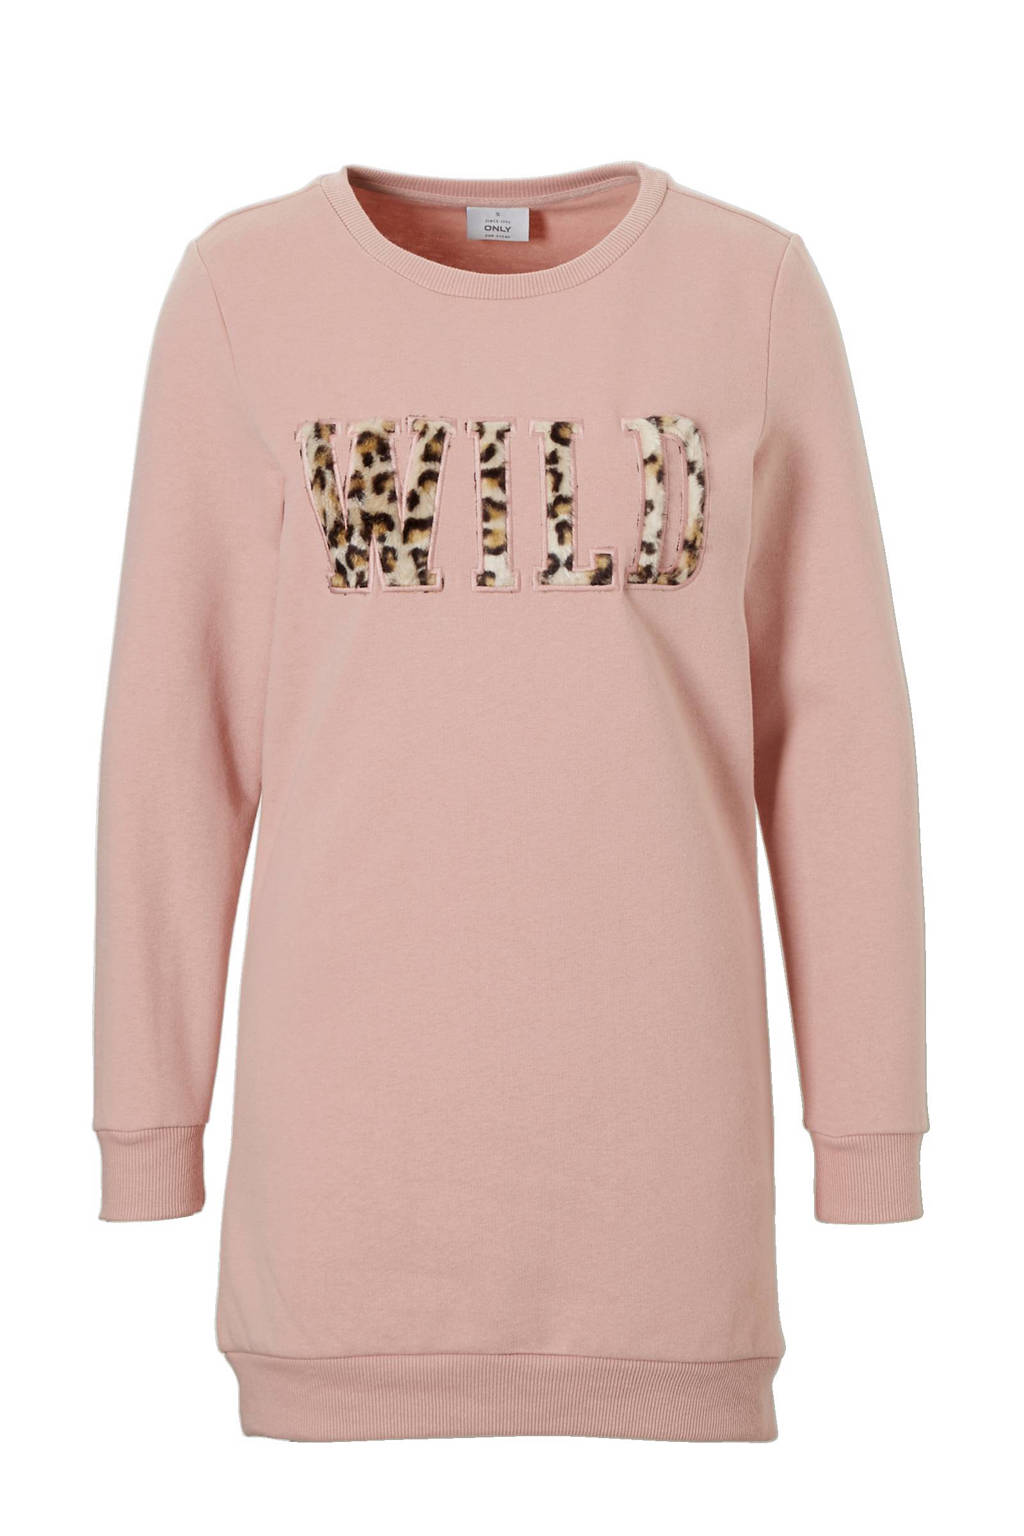 2a356c2ea13e3d ONLY sweat jurk met flockprint